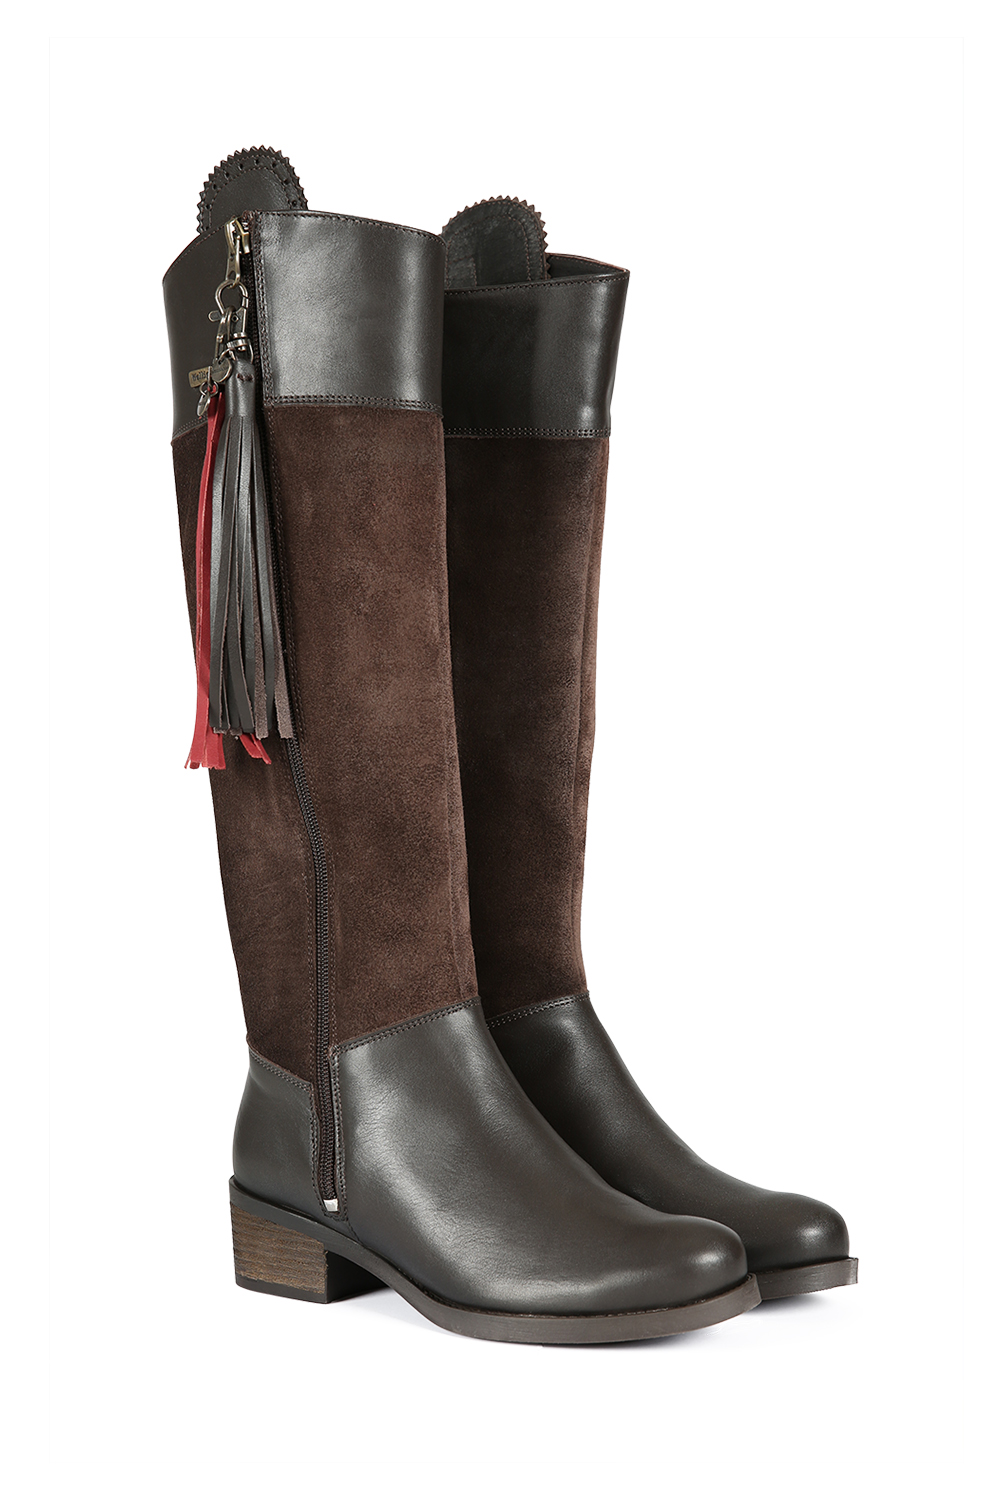 Mayfair Chocolate Leather Boots